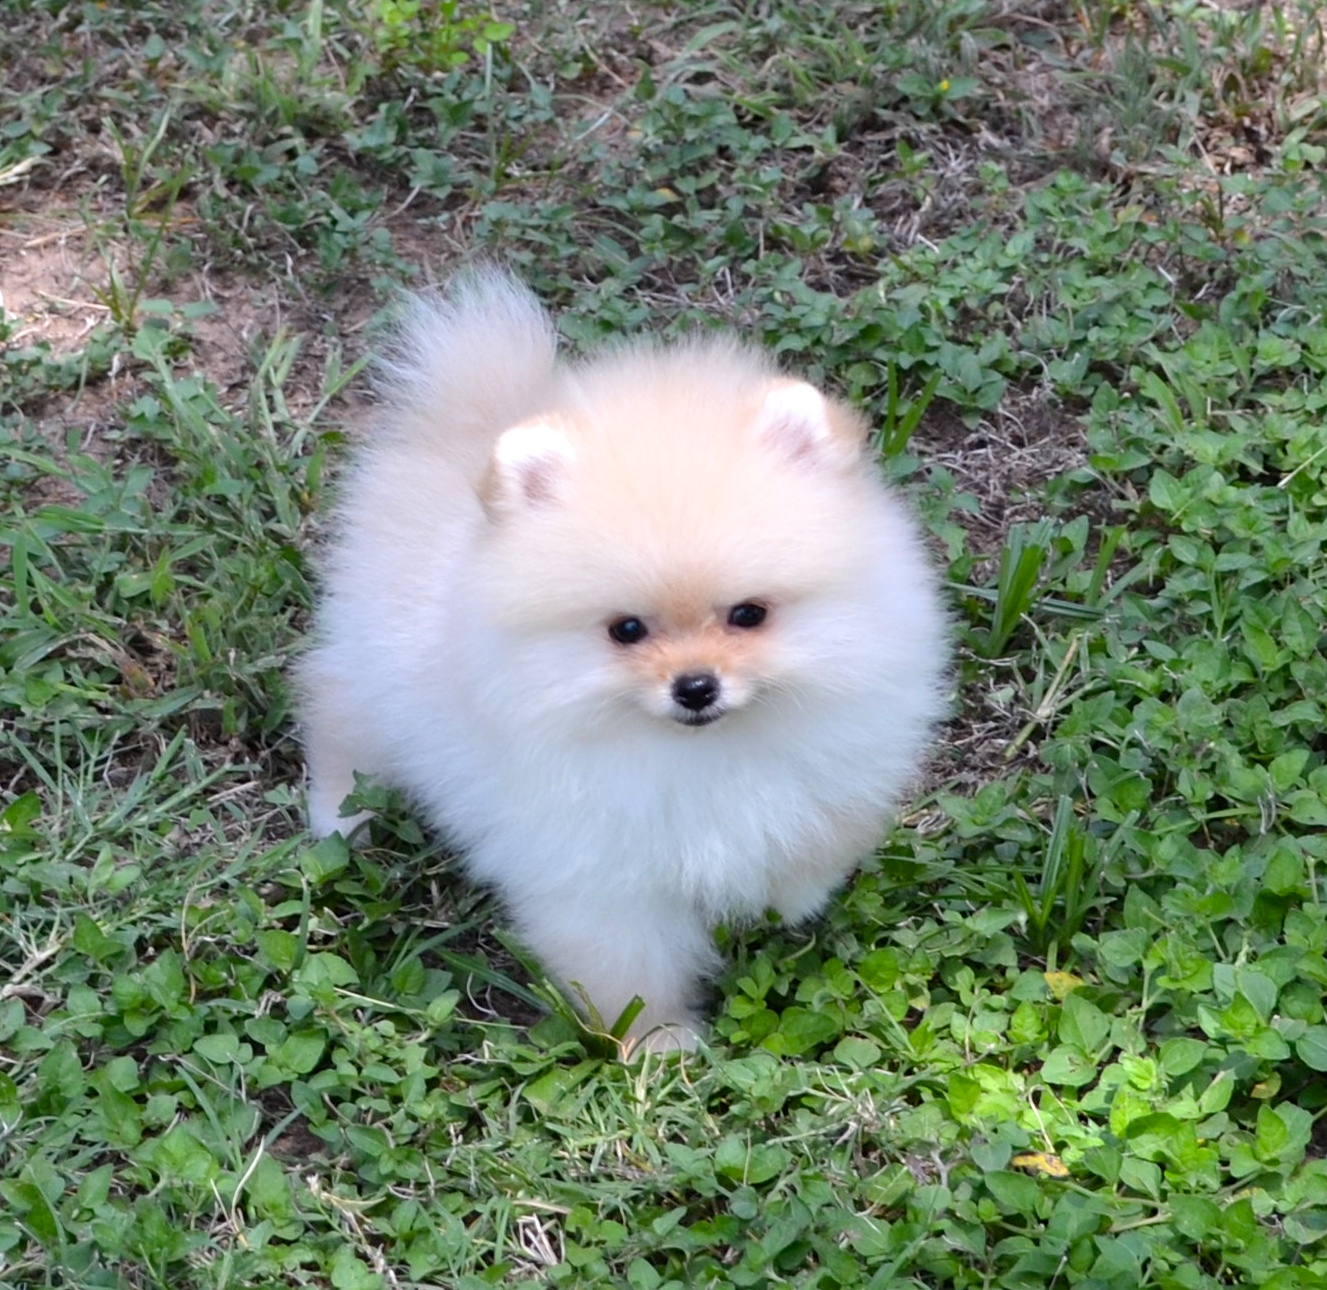 Mesmerizing Ones We Have Poms Dee Pomeranians How Long Do Toy Pomeranians Live How Long Do Maltese Pomeranians Live This Is A Page Dedicated To None Se Poms Are But Simply Examples bark post How Long Do Pomeranians Live